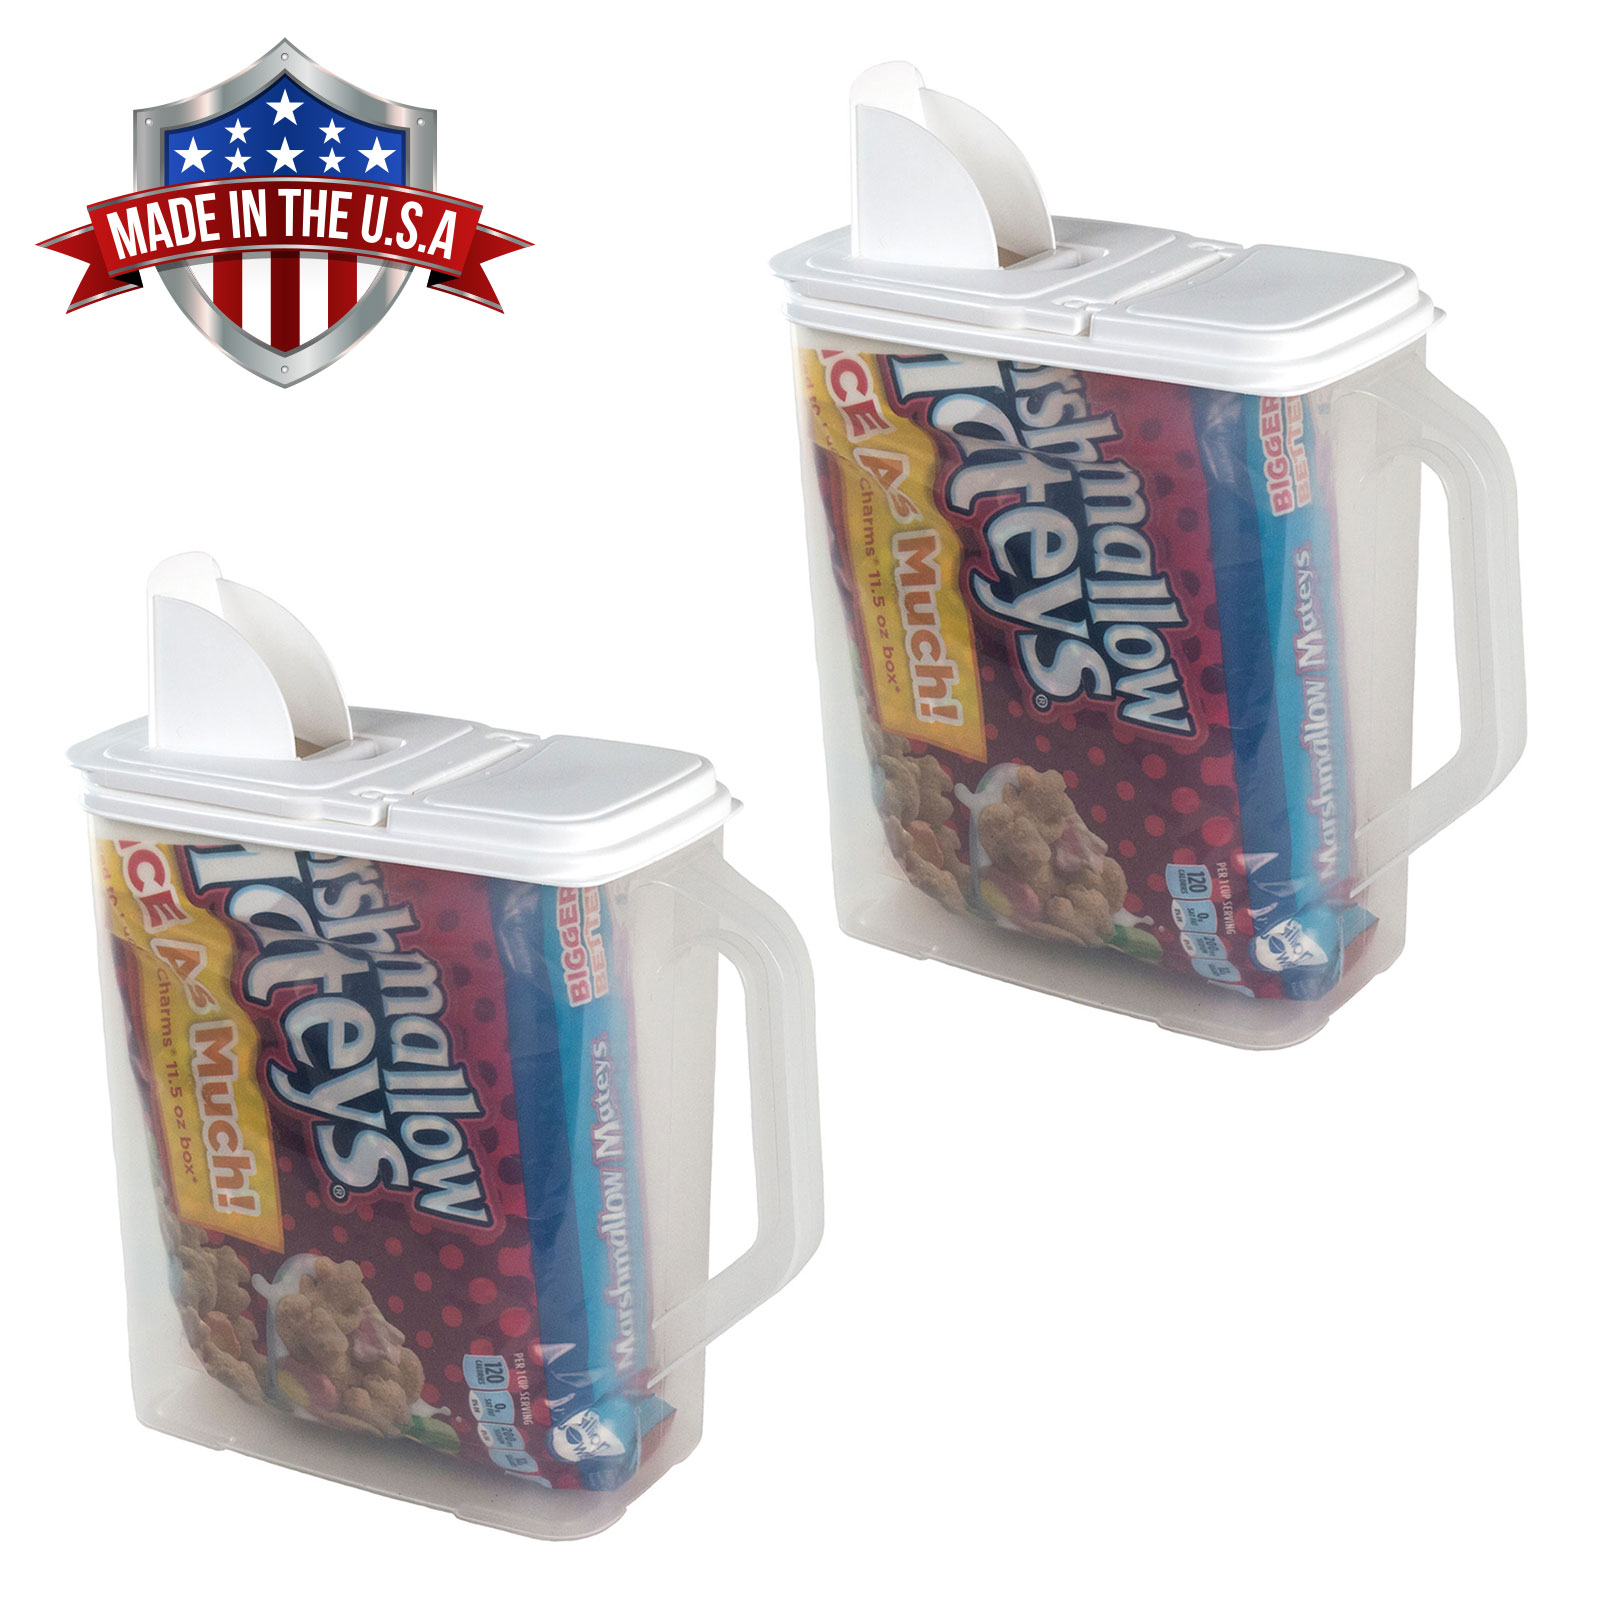 2 Pack of Food Storage Container 6 Quart Flour Sugar Keeper Pour n' Store with Handle by